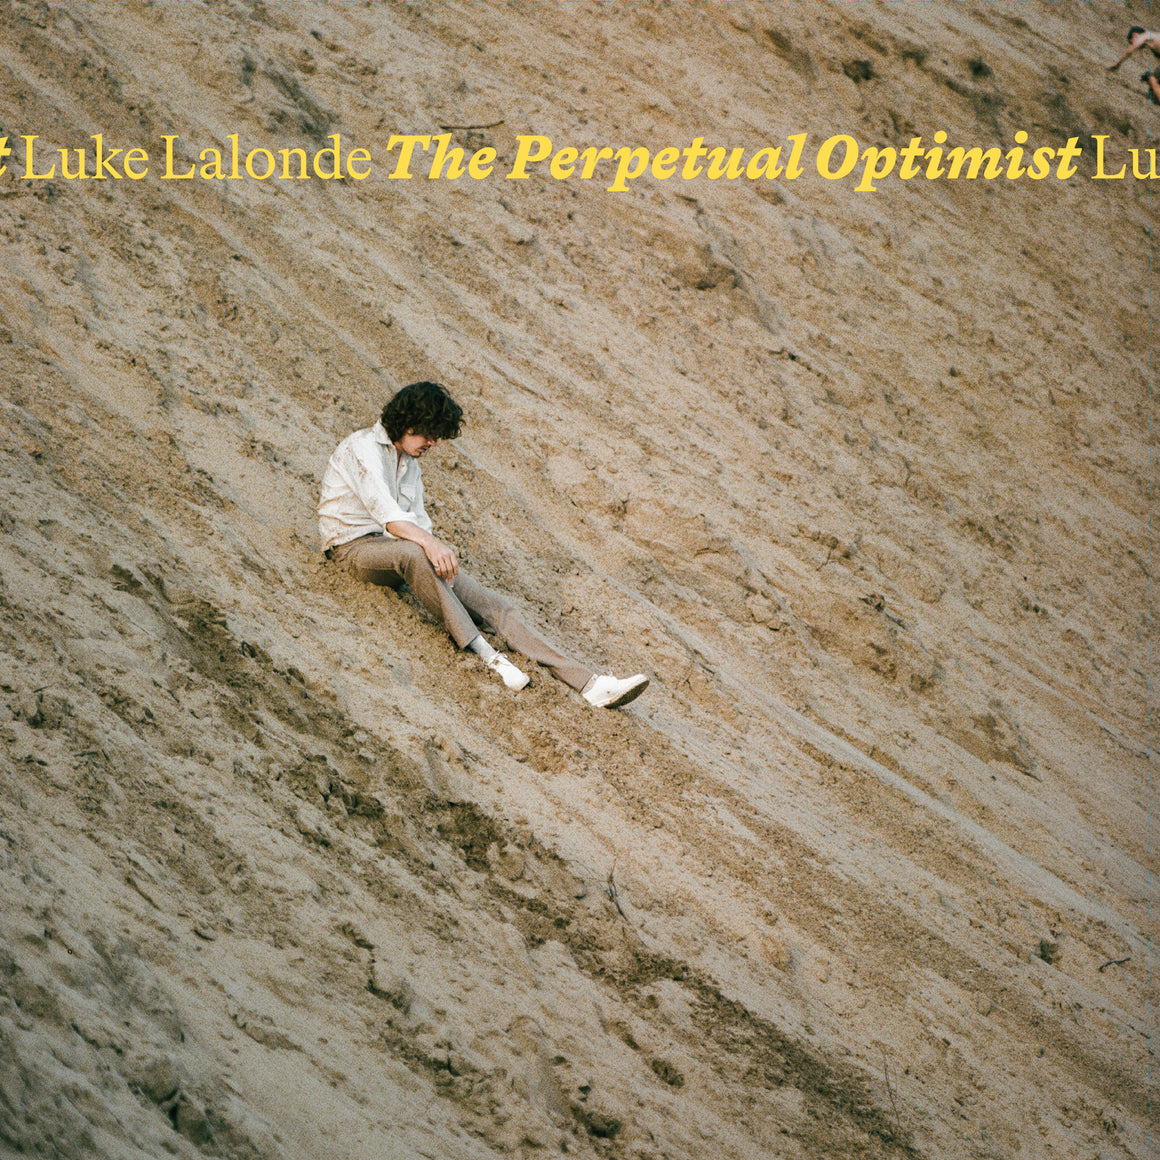 The Perpetual Optimist